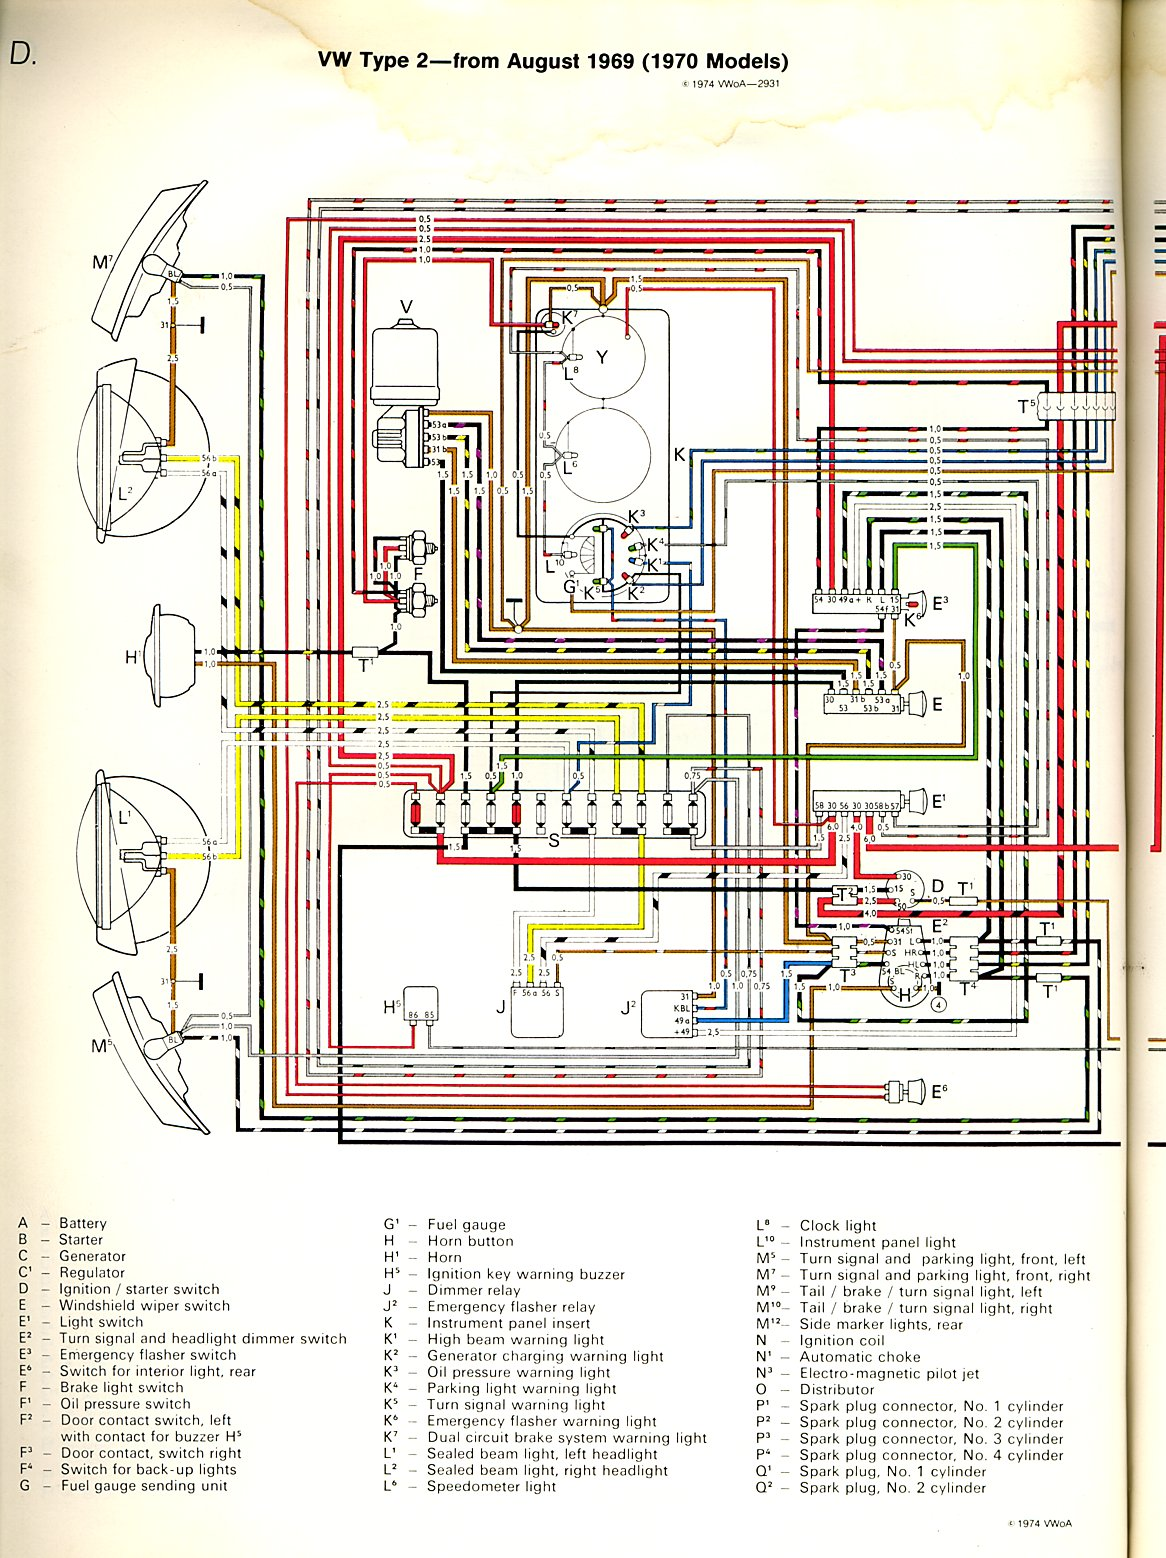 Gm Back Up Light Wiring Library Door Diagram 1965 Vw Van Great Design Of U2022 Rh Homewerk Co Horn